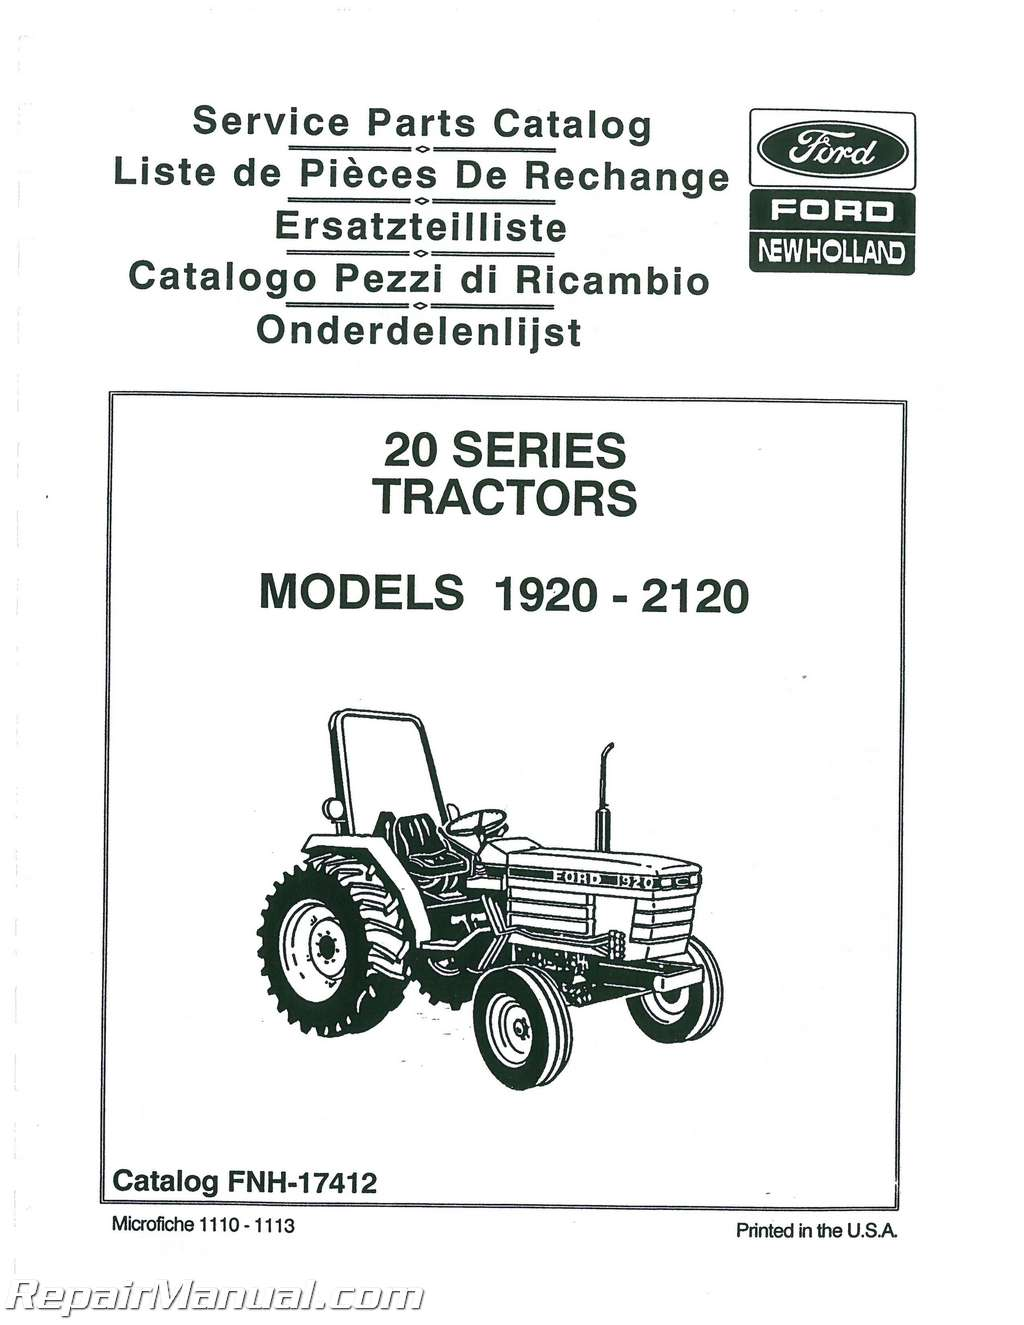 New Holland Tractor Manuals : Ford  tractor parts manual